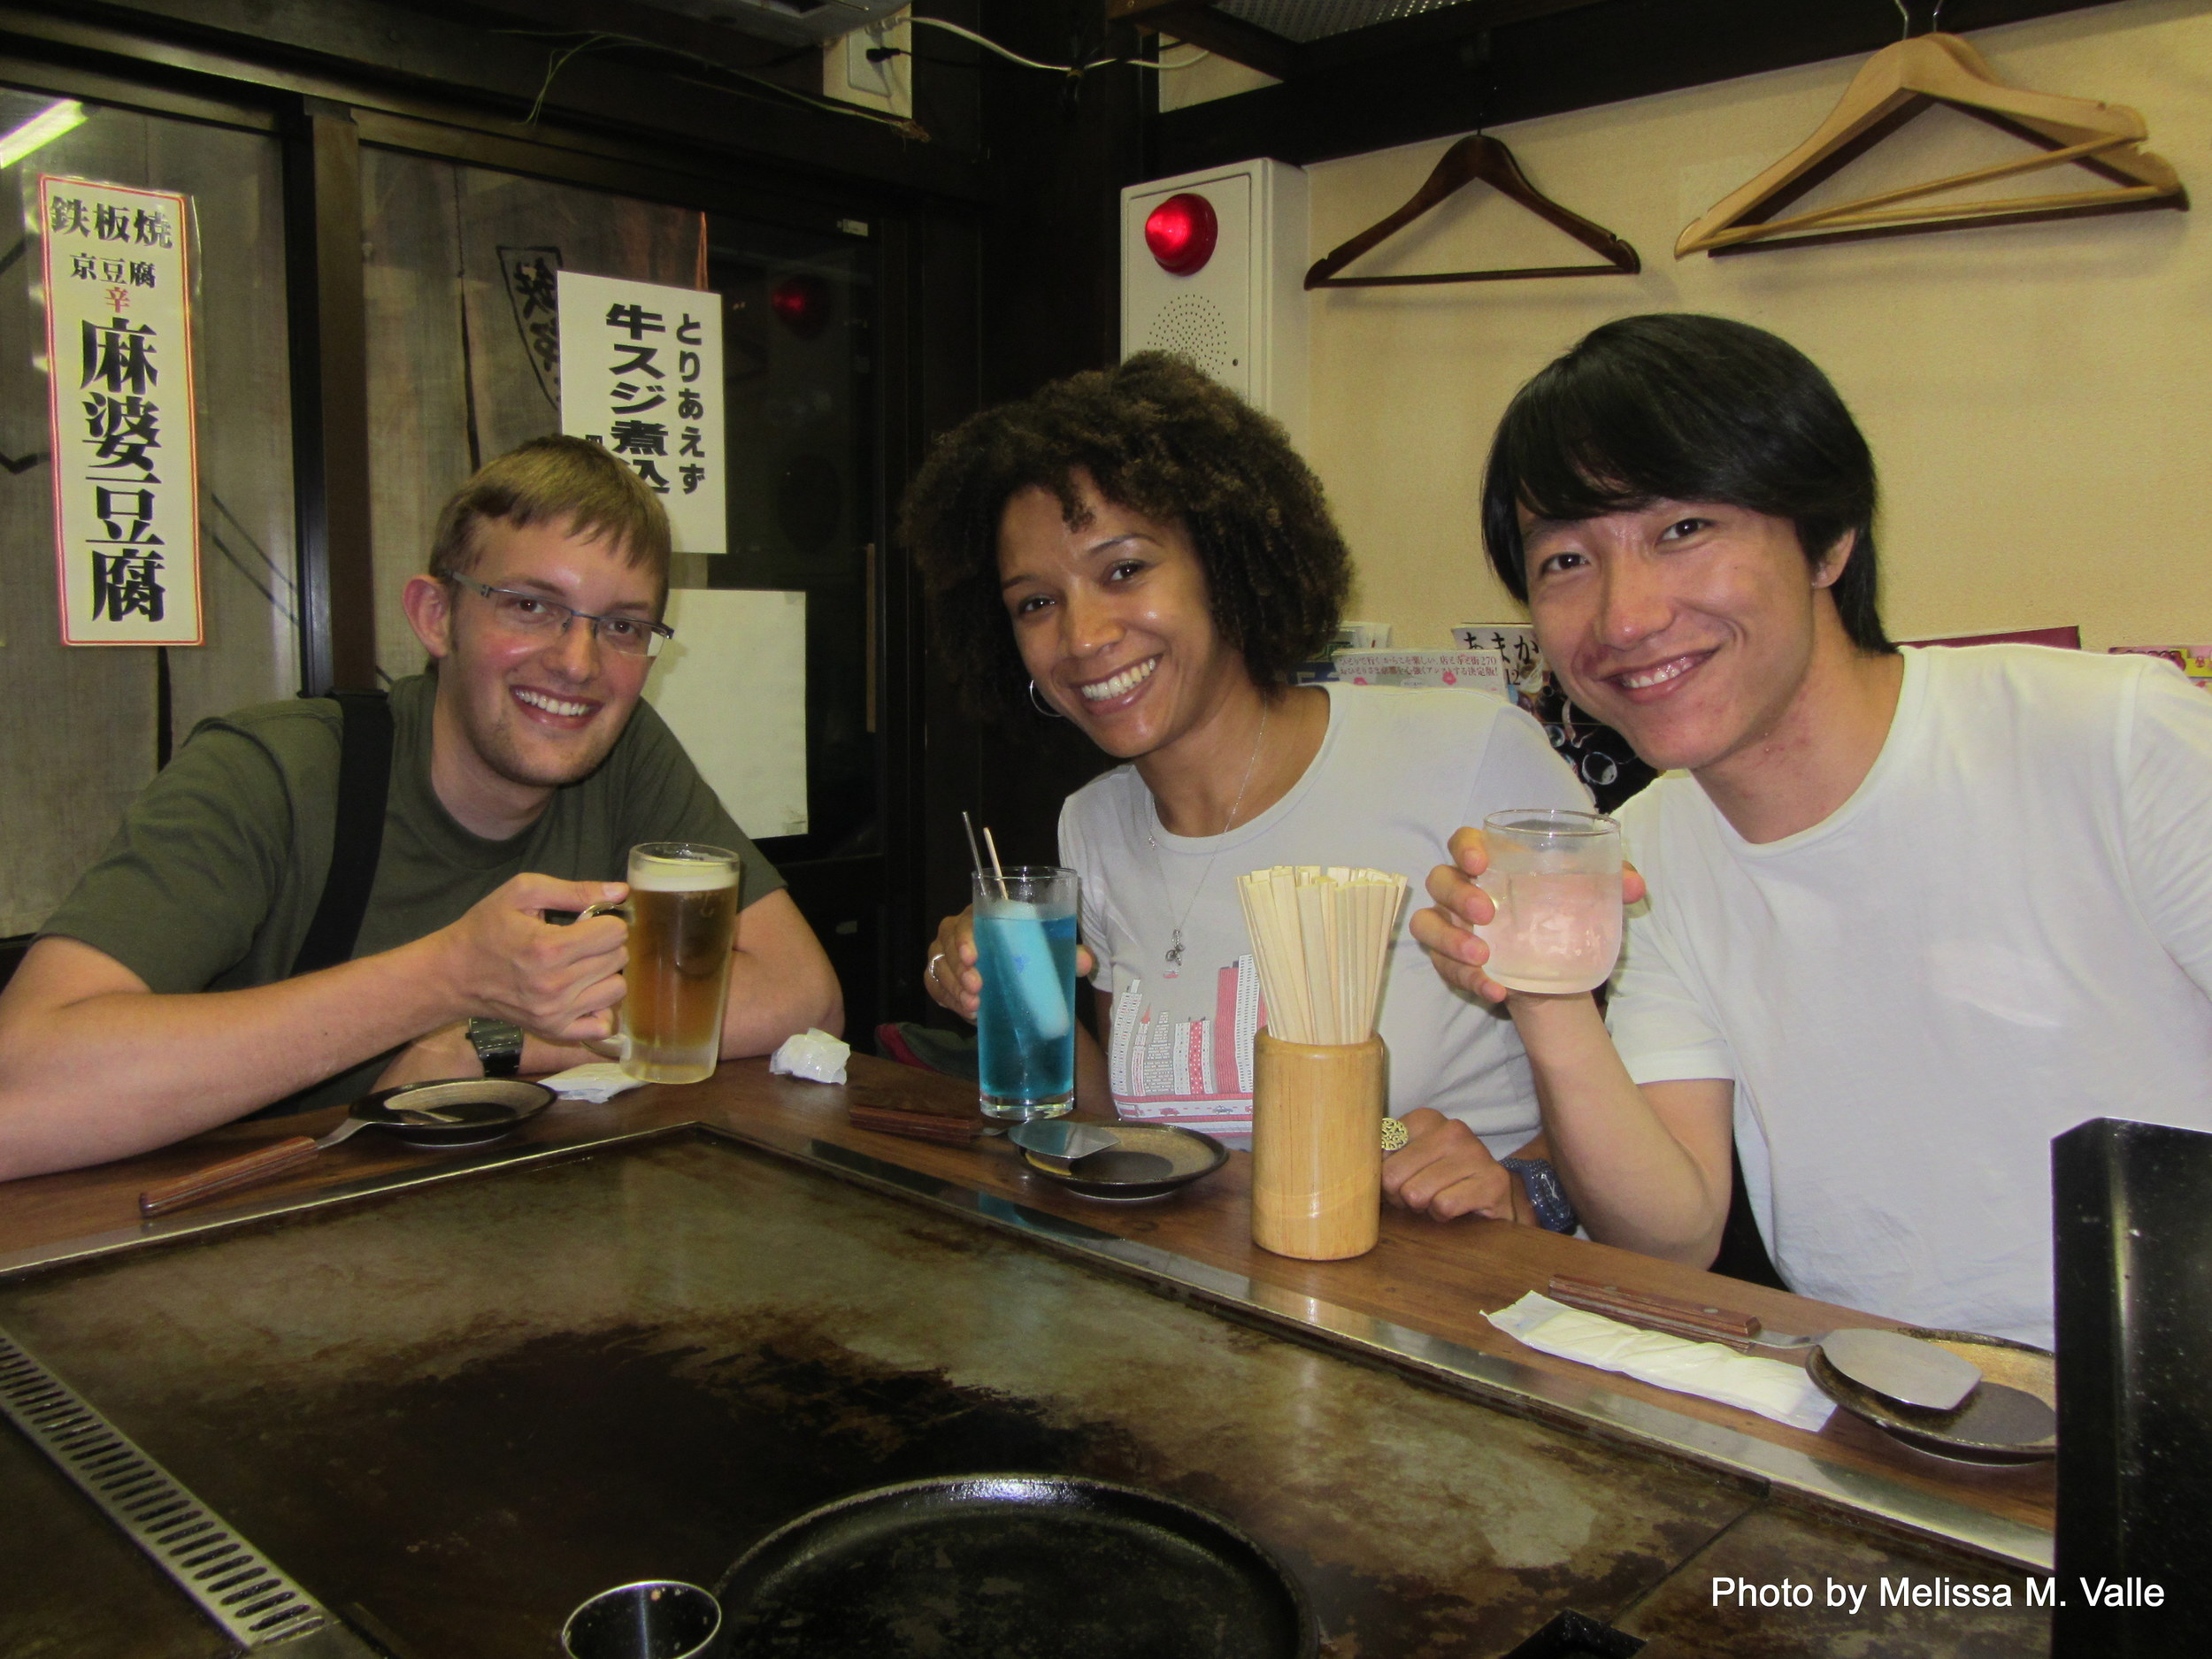 7.19.14 Kyoto, Japan-Okonoiyaki dinner with Calvin and Tony (1).JPG